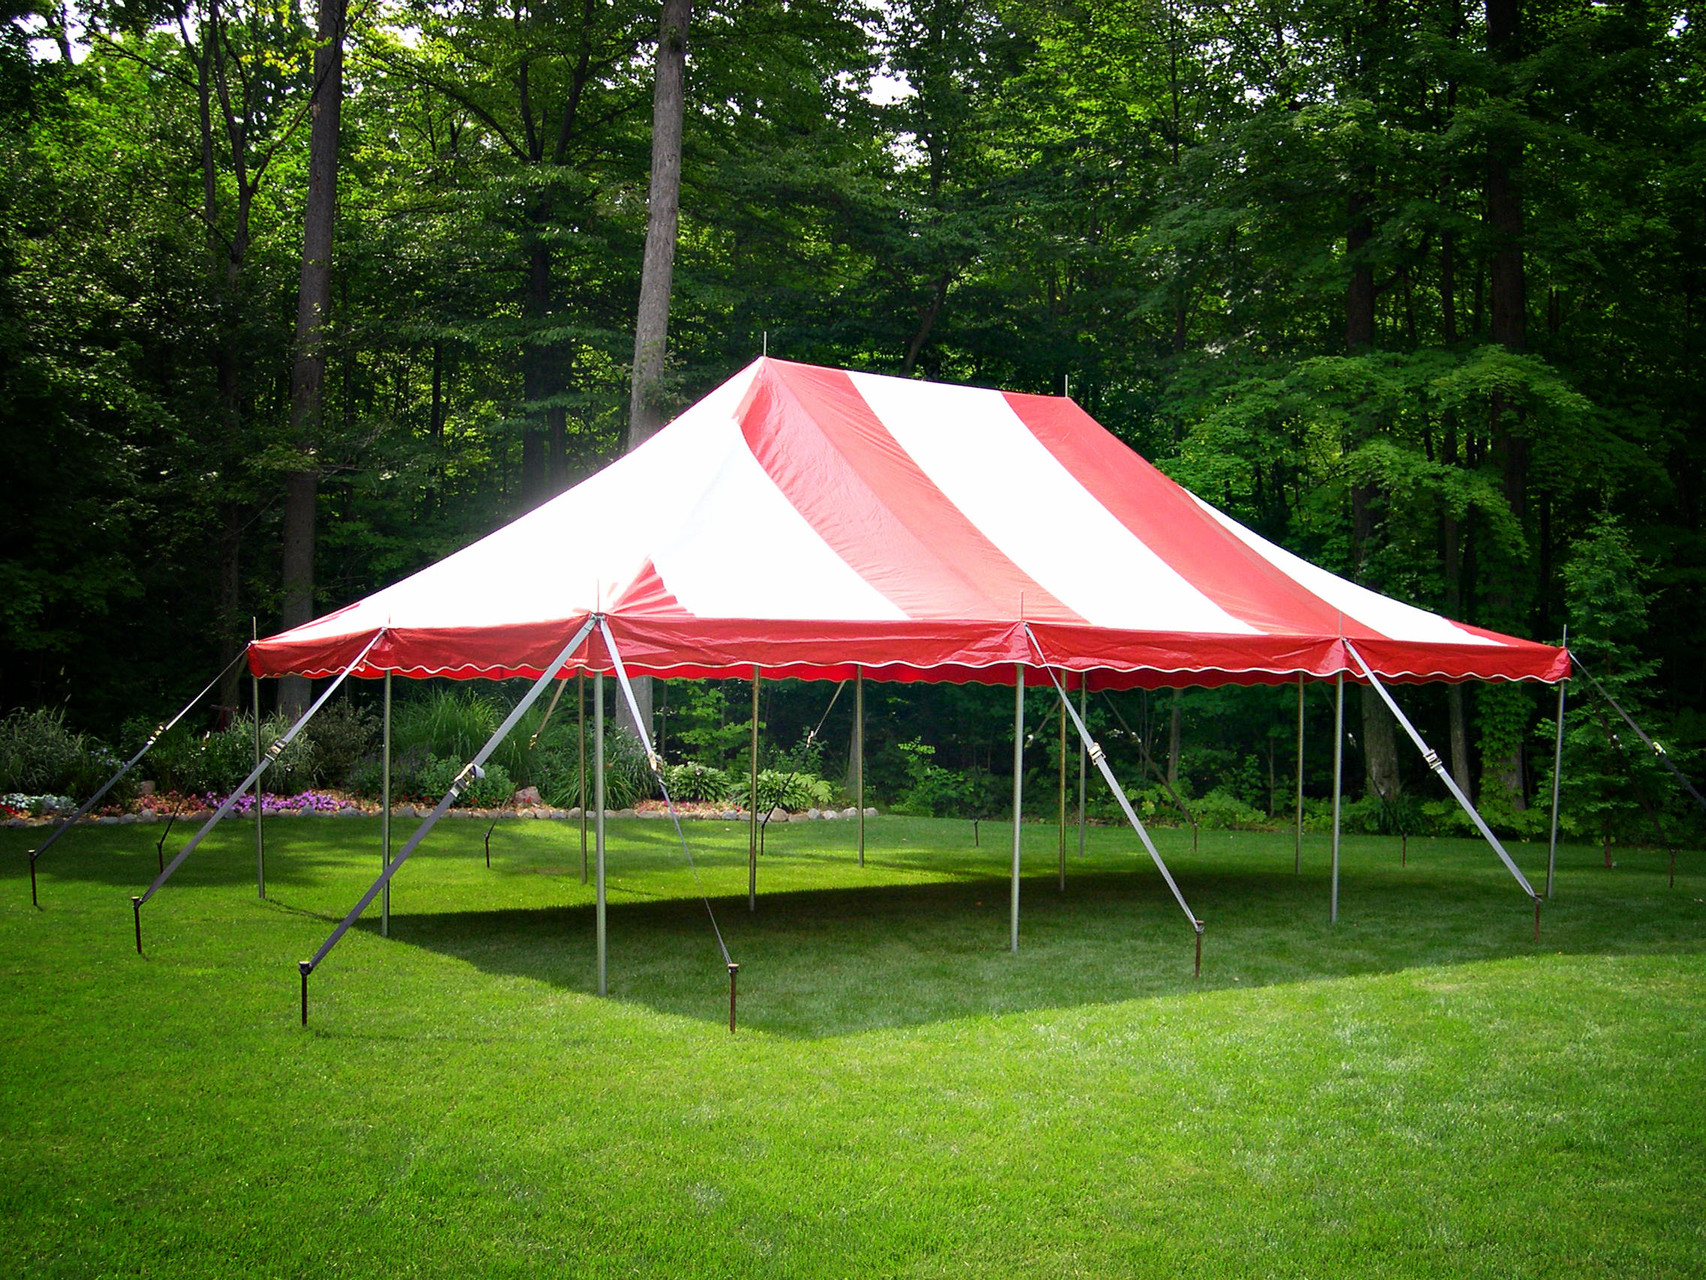 20 x 30 Pole tent seats up to 72 people with 9 banquet tables or 48 people with 6 round tables